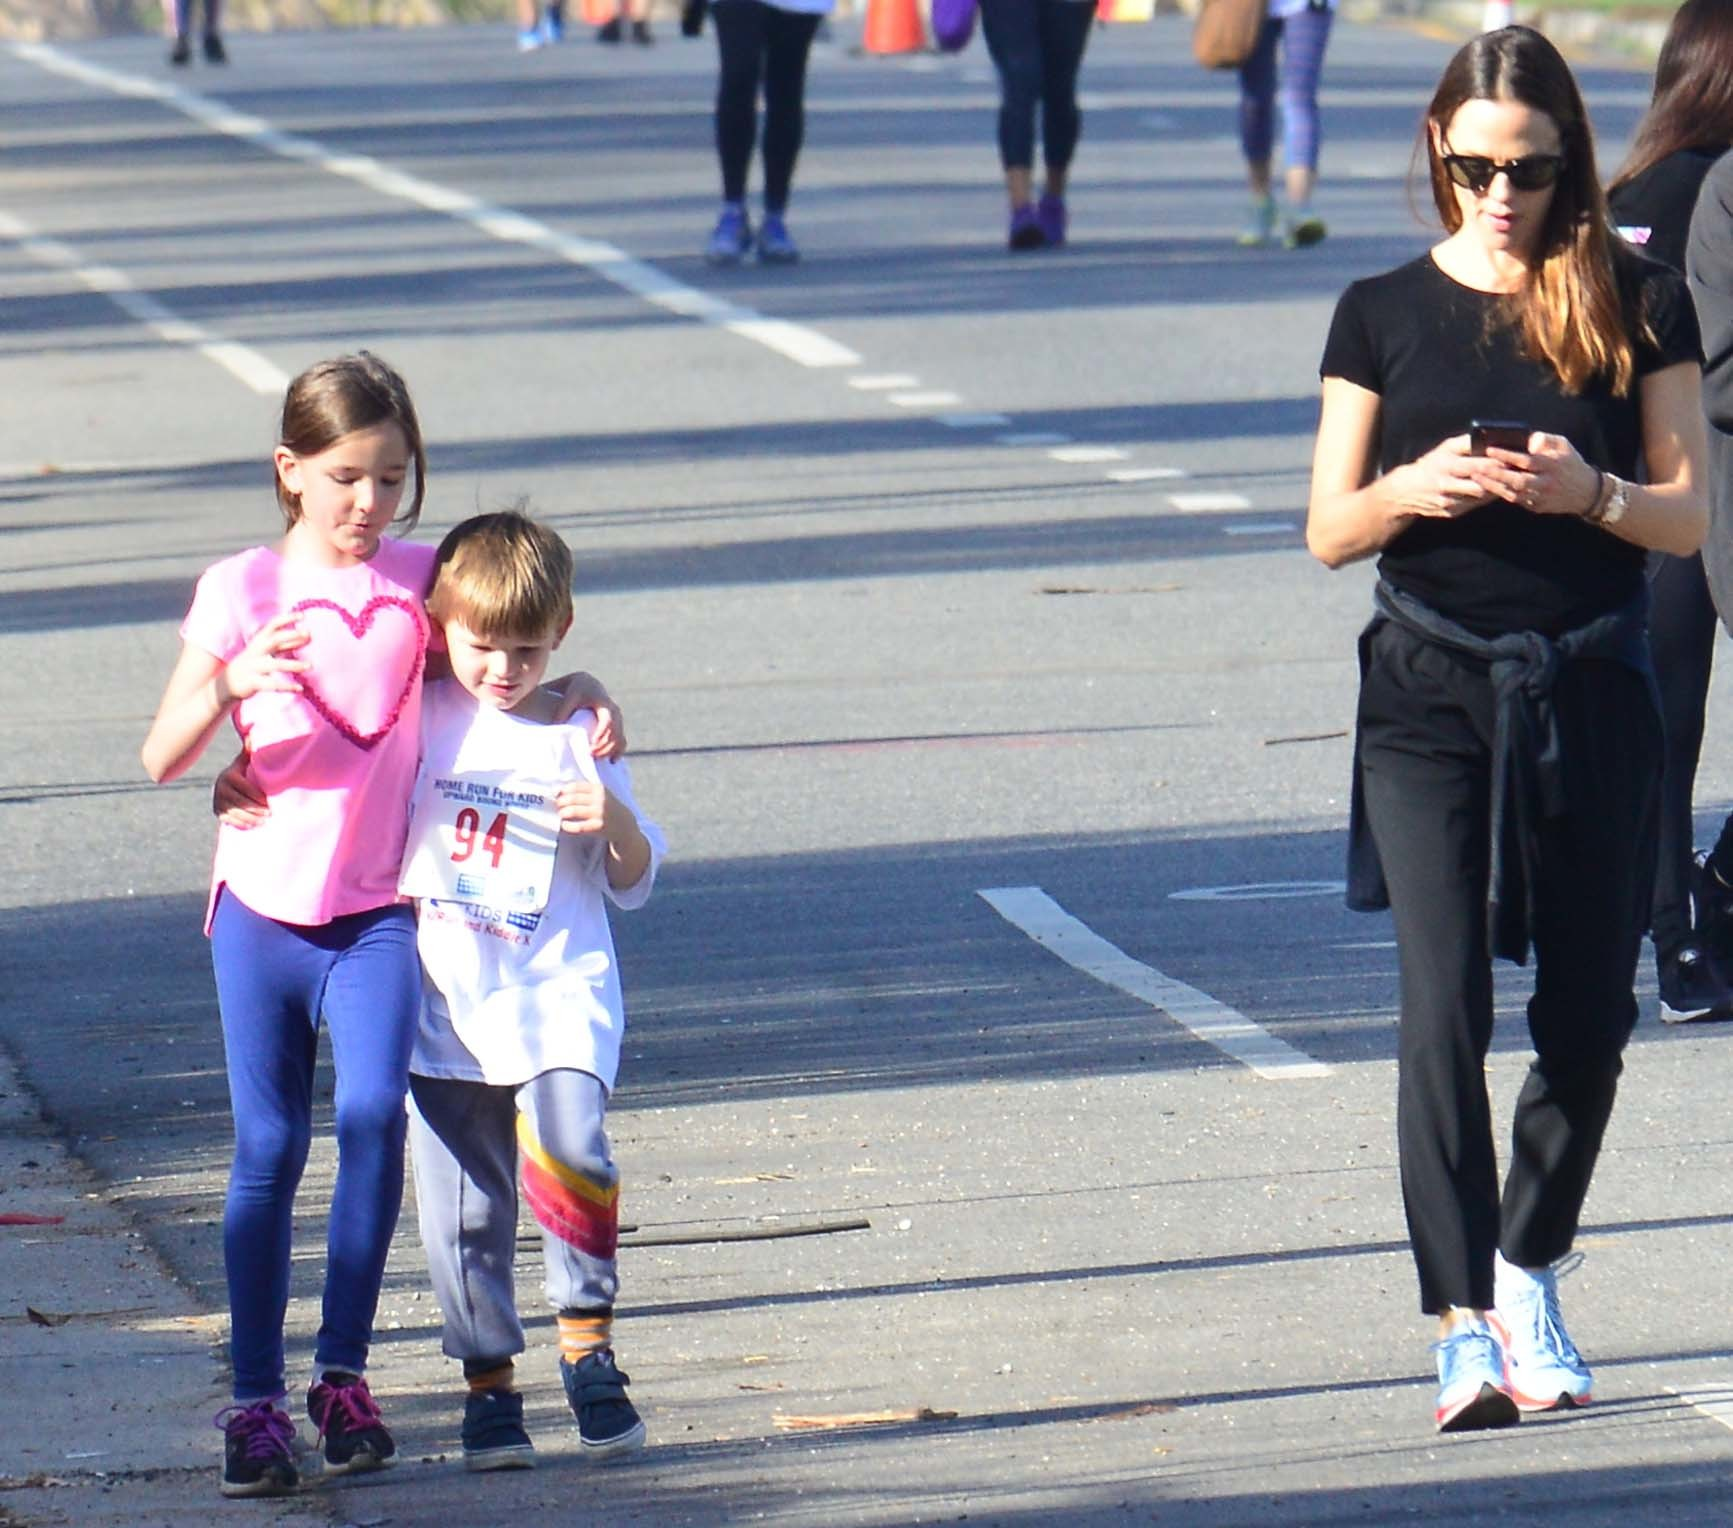 Jennifer Garner runs charity race before selling Girl Scout cookies at local grocery store